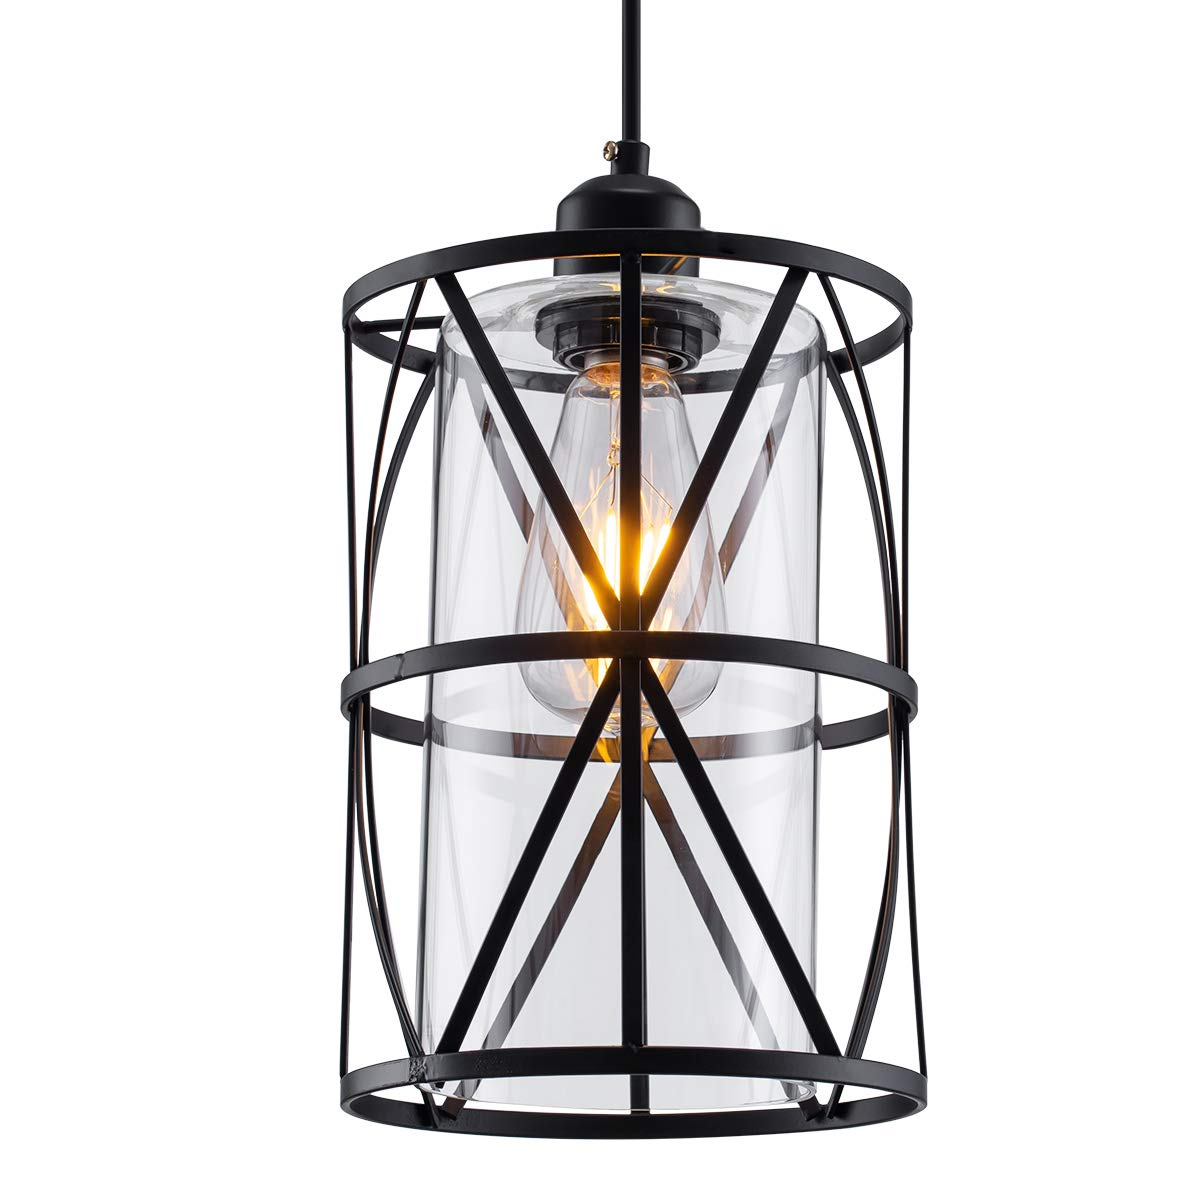 ShengQing Black Industrial Metal Swag Light, Cylindrical Pendant Light with Clear Glass Shape, New Transitional Hanging Light Fixture for Kitchen Island Counter Dining Room Bedroom Restaurant